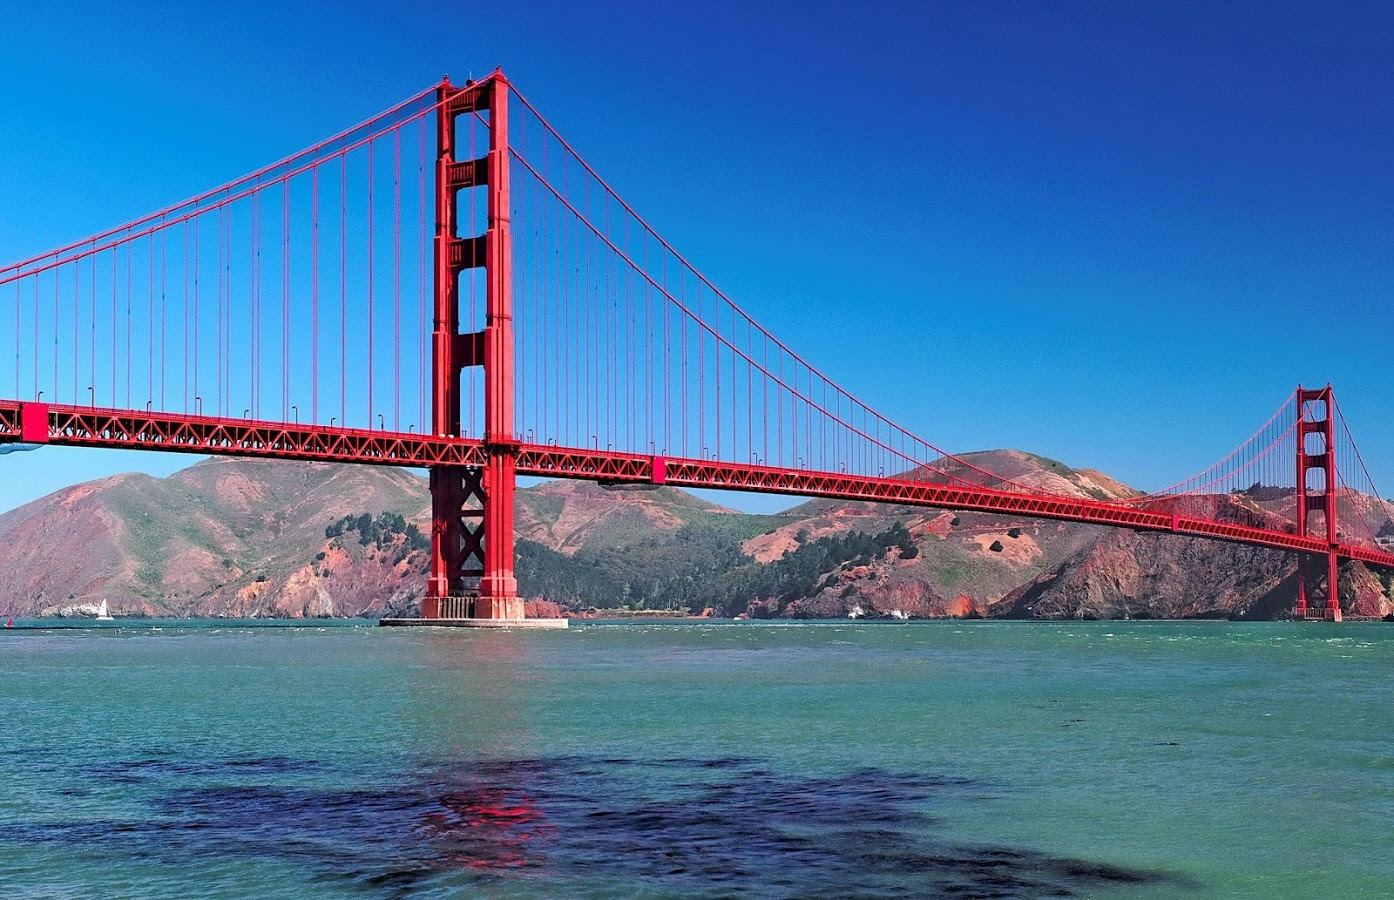 San Francisco HD Wallpaper   Android Apps on Google Play 1394x900